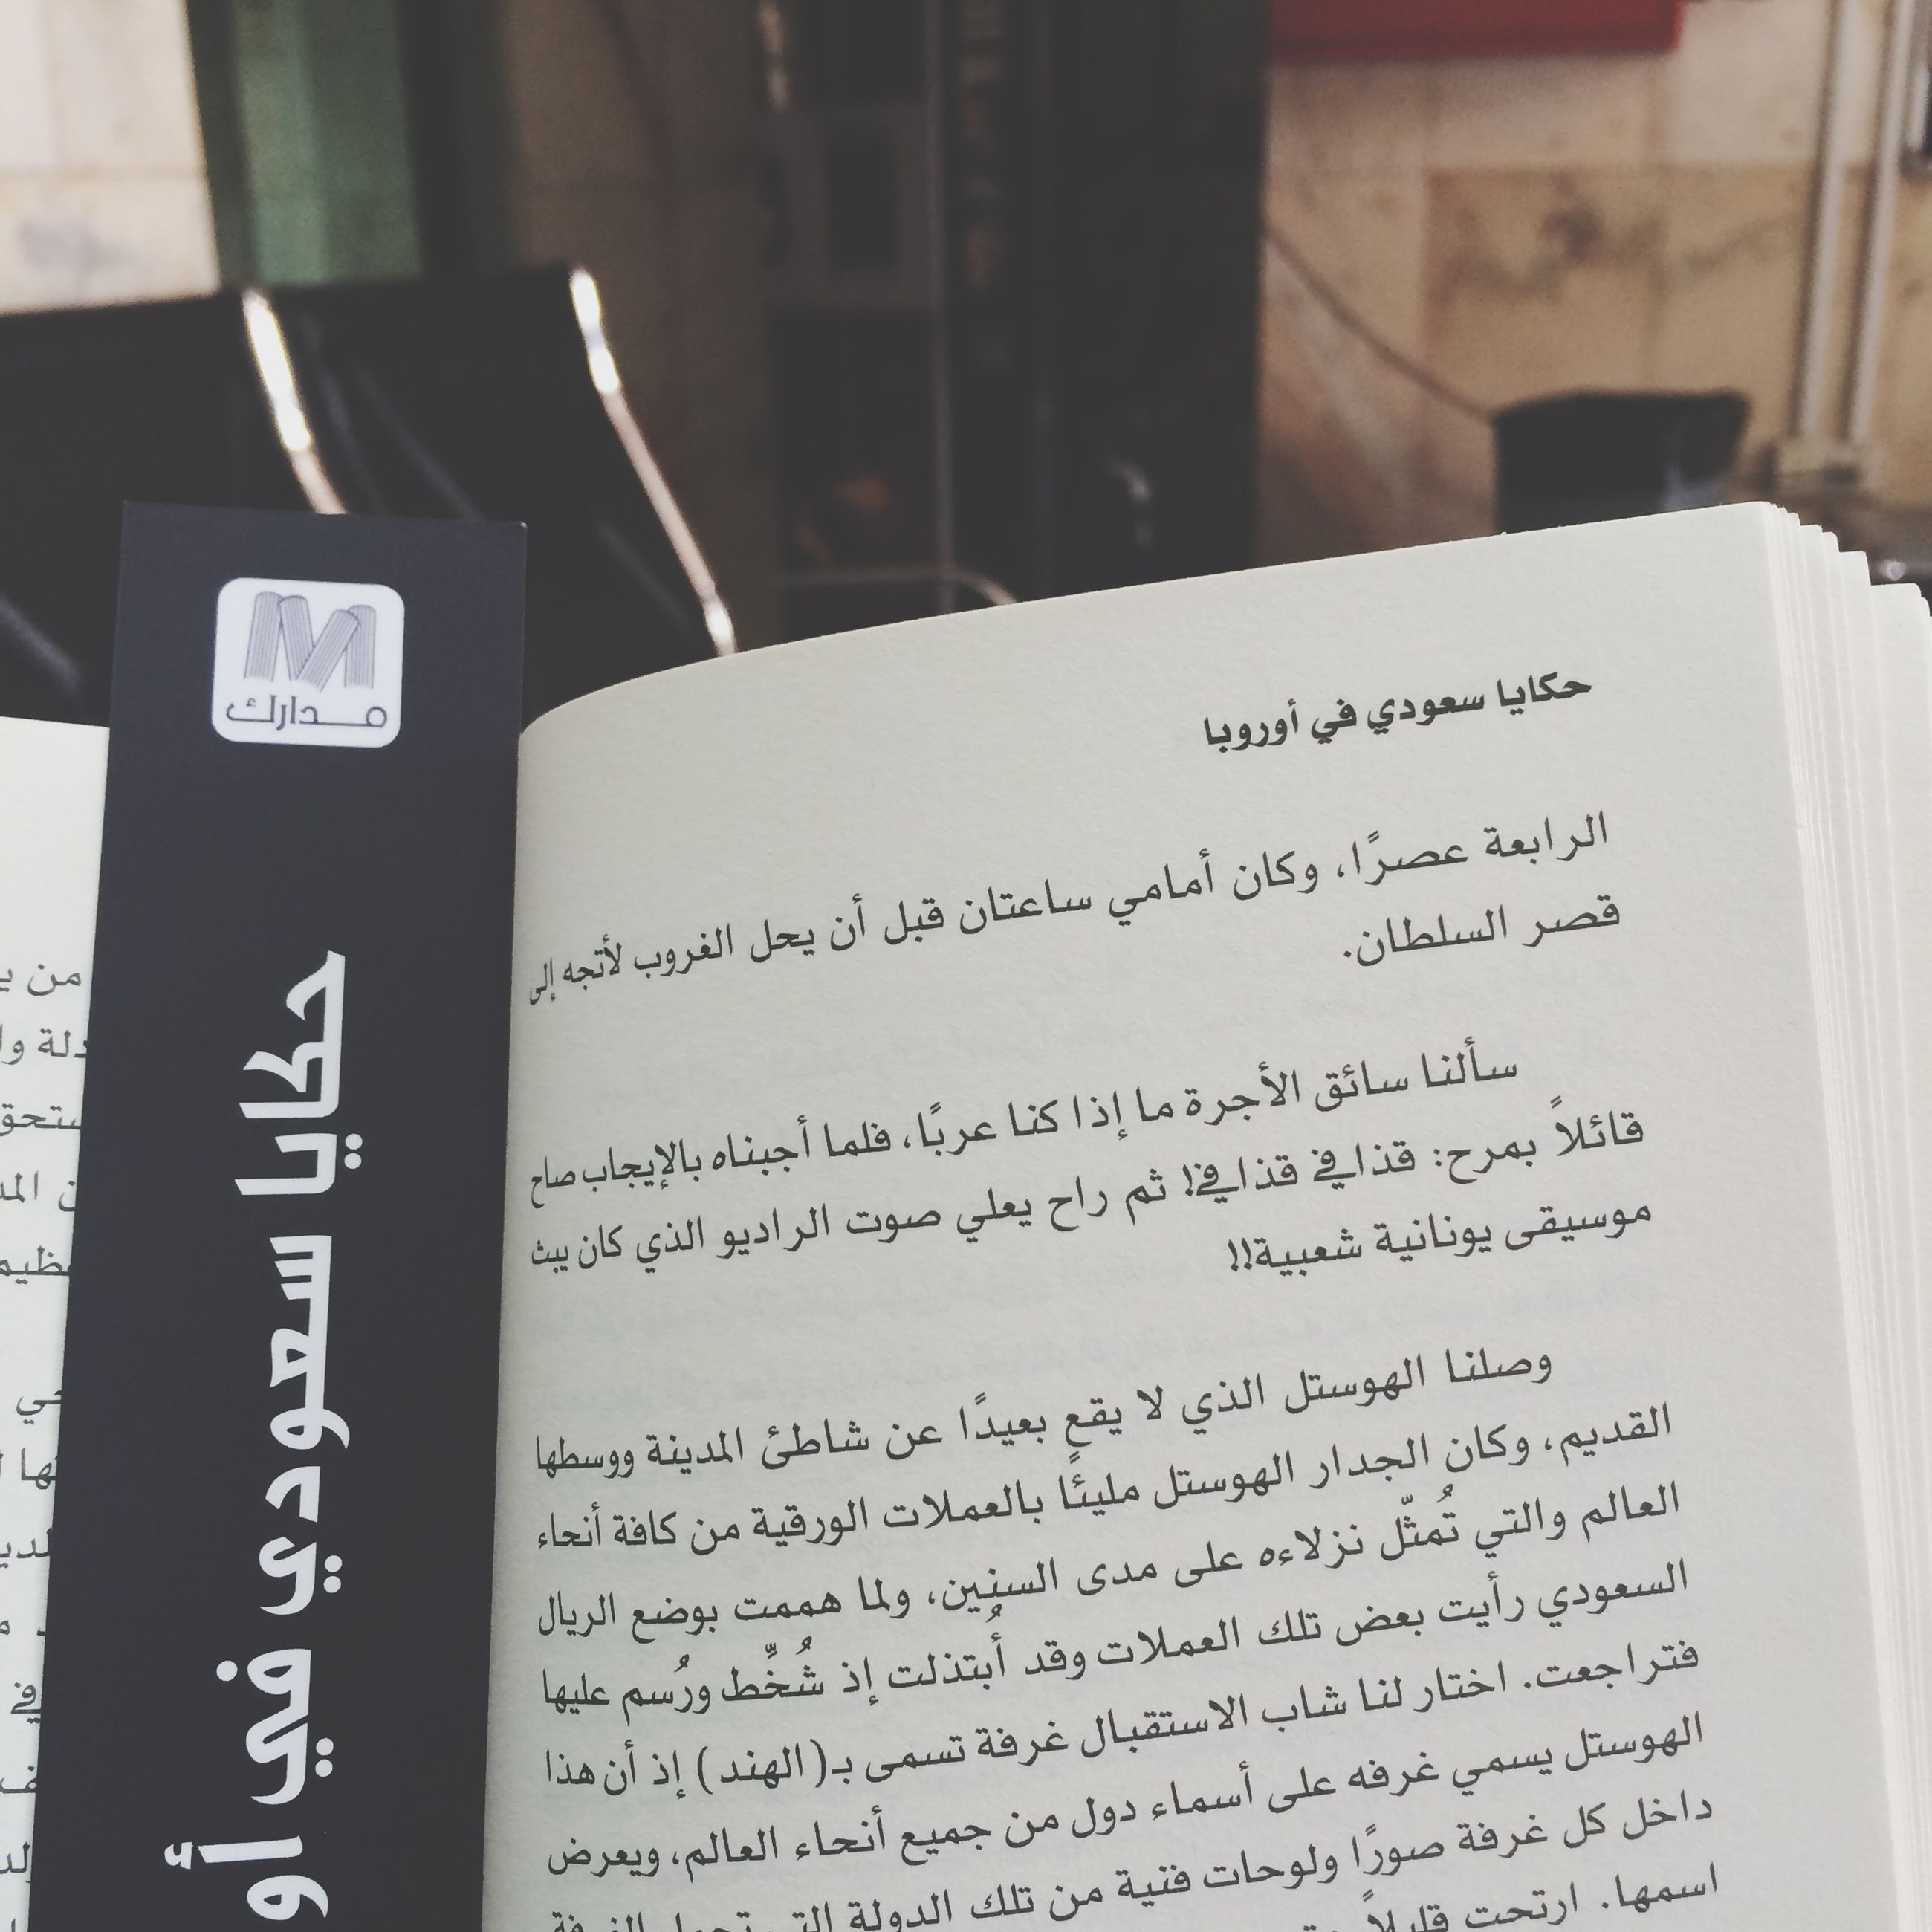 text, communication, western script, indoors, close-up, book, paper, number, education, still life, non-western script, page, selective focus, focus on foreground, information, capital letter, technology, no people, table, message